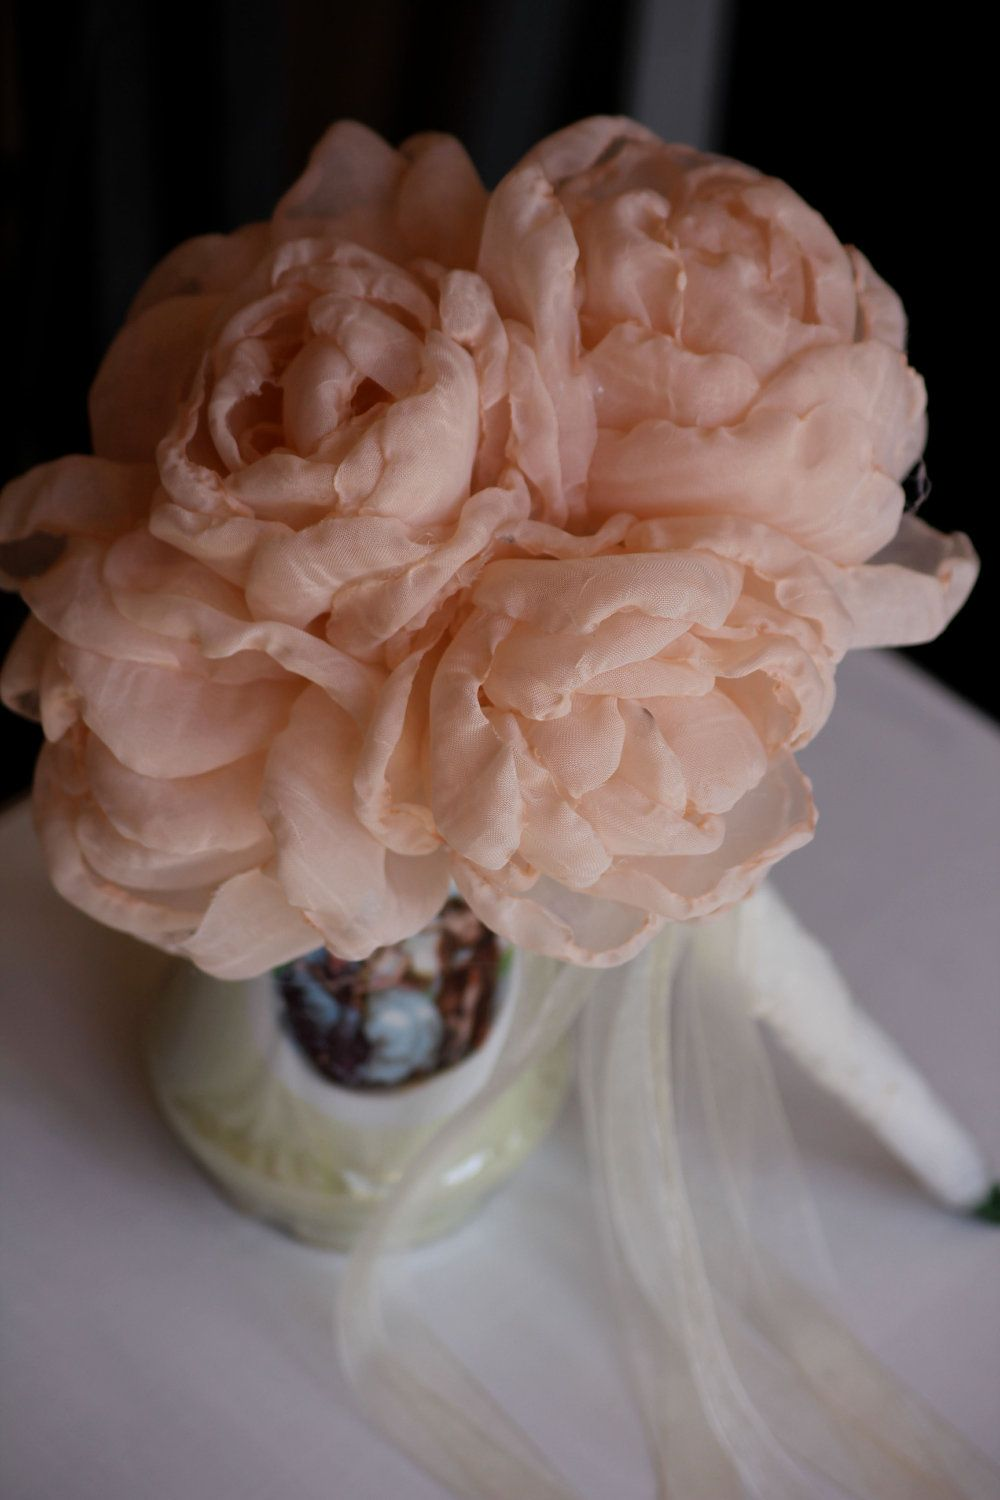 Fabric flowers bouquet delicate handmade fabric flowers beautiful fabric flowers bouquet delicate handmade fabric flowers beautiful shabby chic pale pink peonies bridal izmirmasajfo Image collections